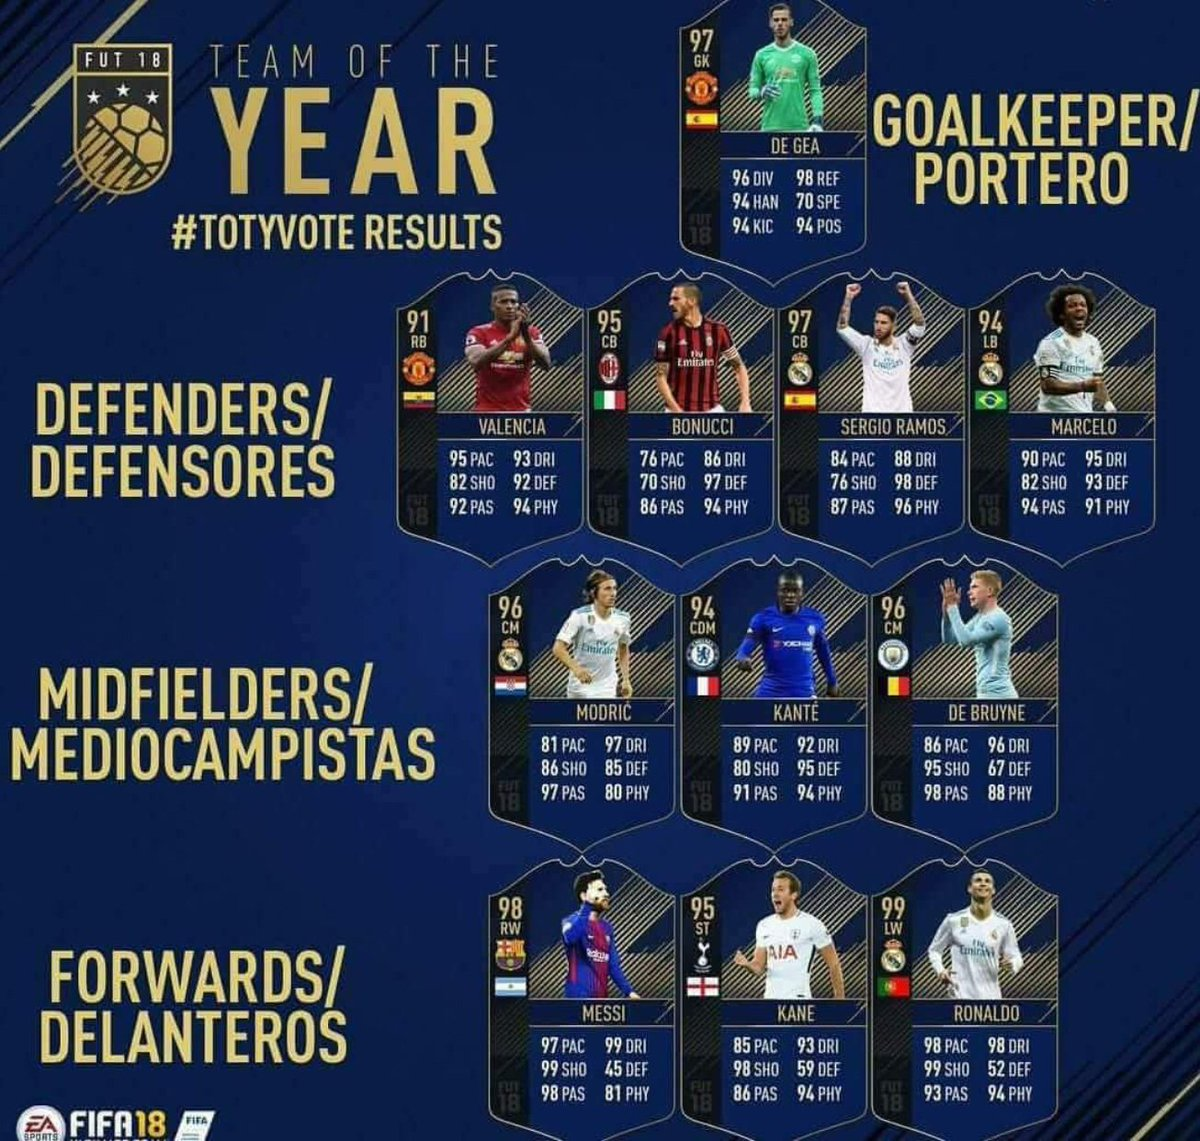 ✔️Kane deserved it ✨ ✔️Ronaldo and Messi still one of the best players in the world 🌎 ✔️Agree about the midfielder picks 👌 ✔️GTFO Buffon, maybe next year 🇮🇹 #FIFA18 #FIFAMobile #TOTY